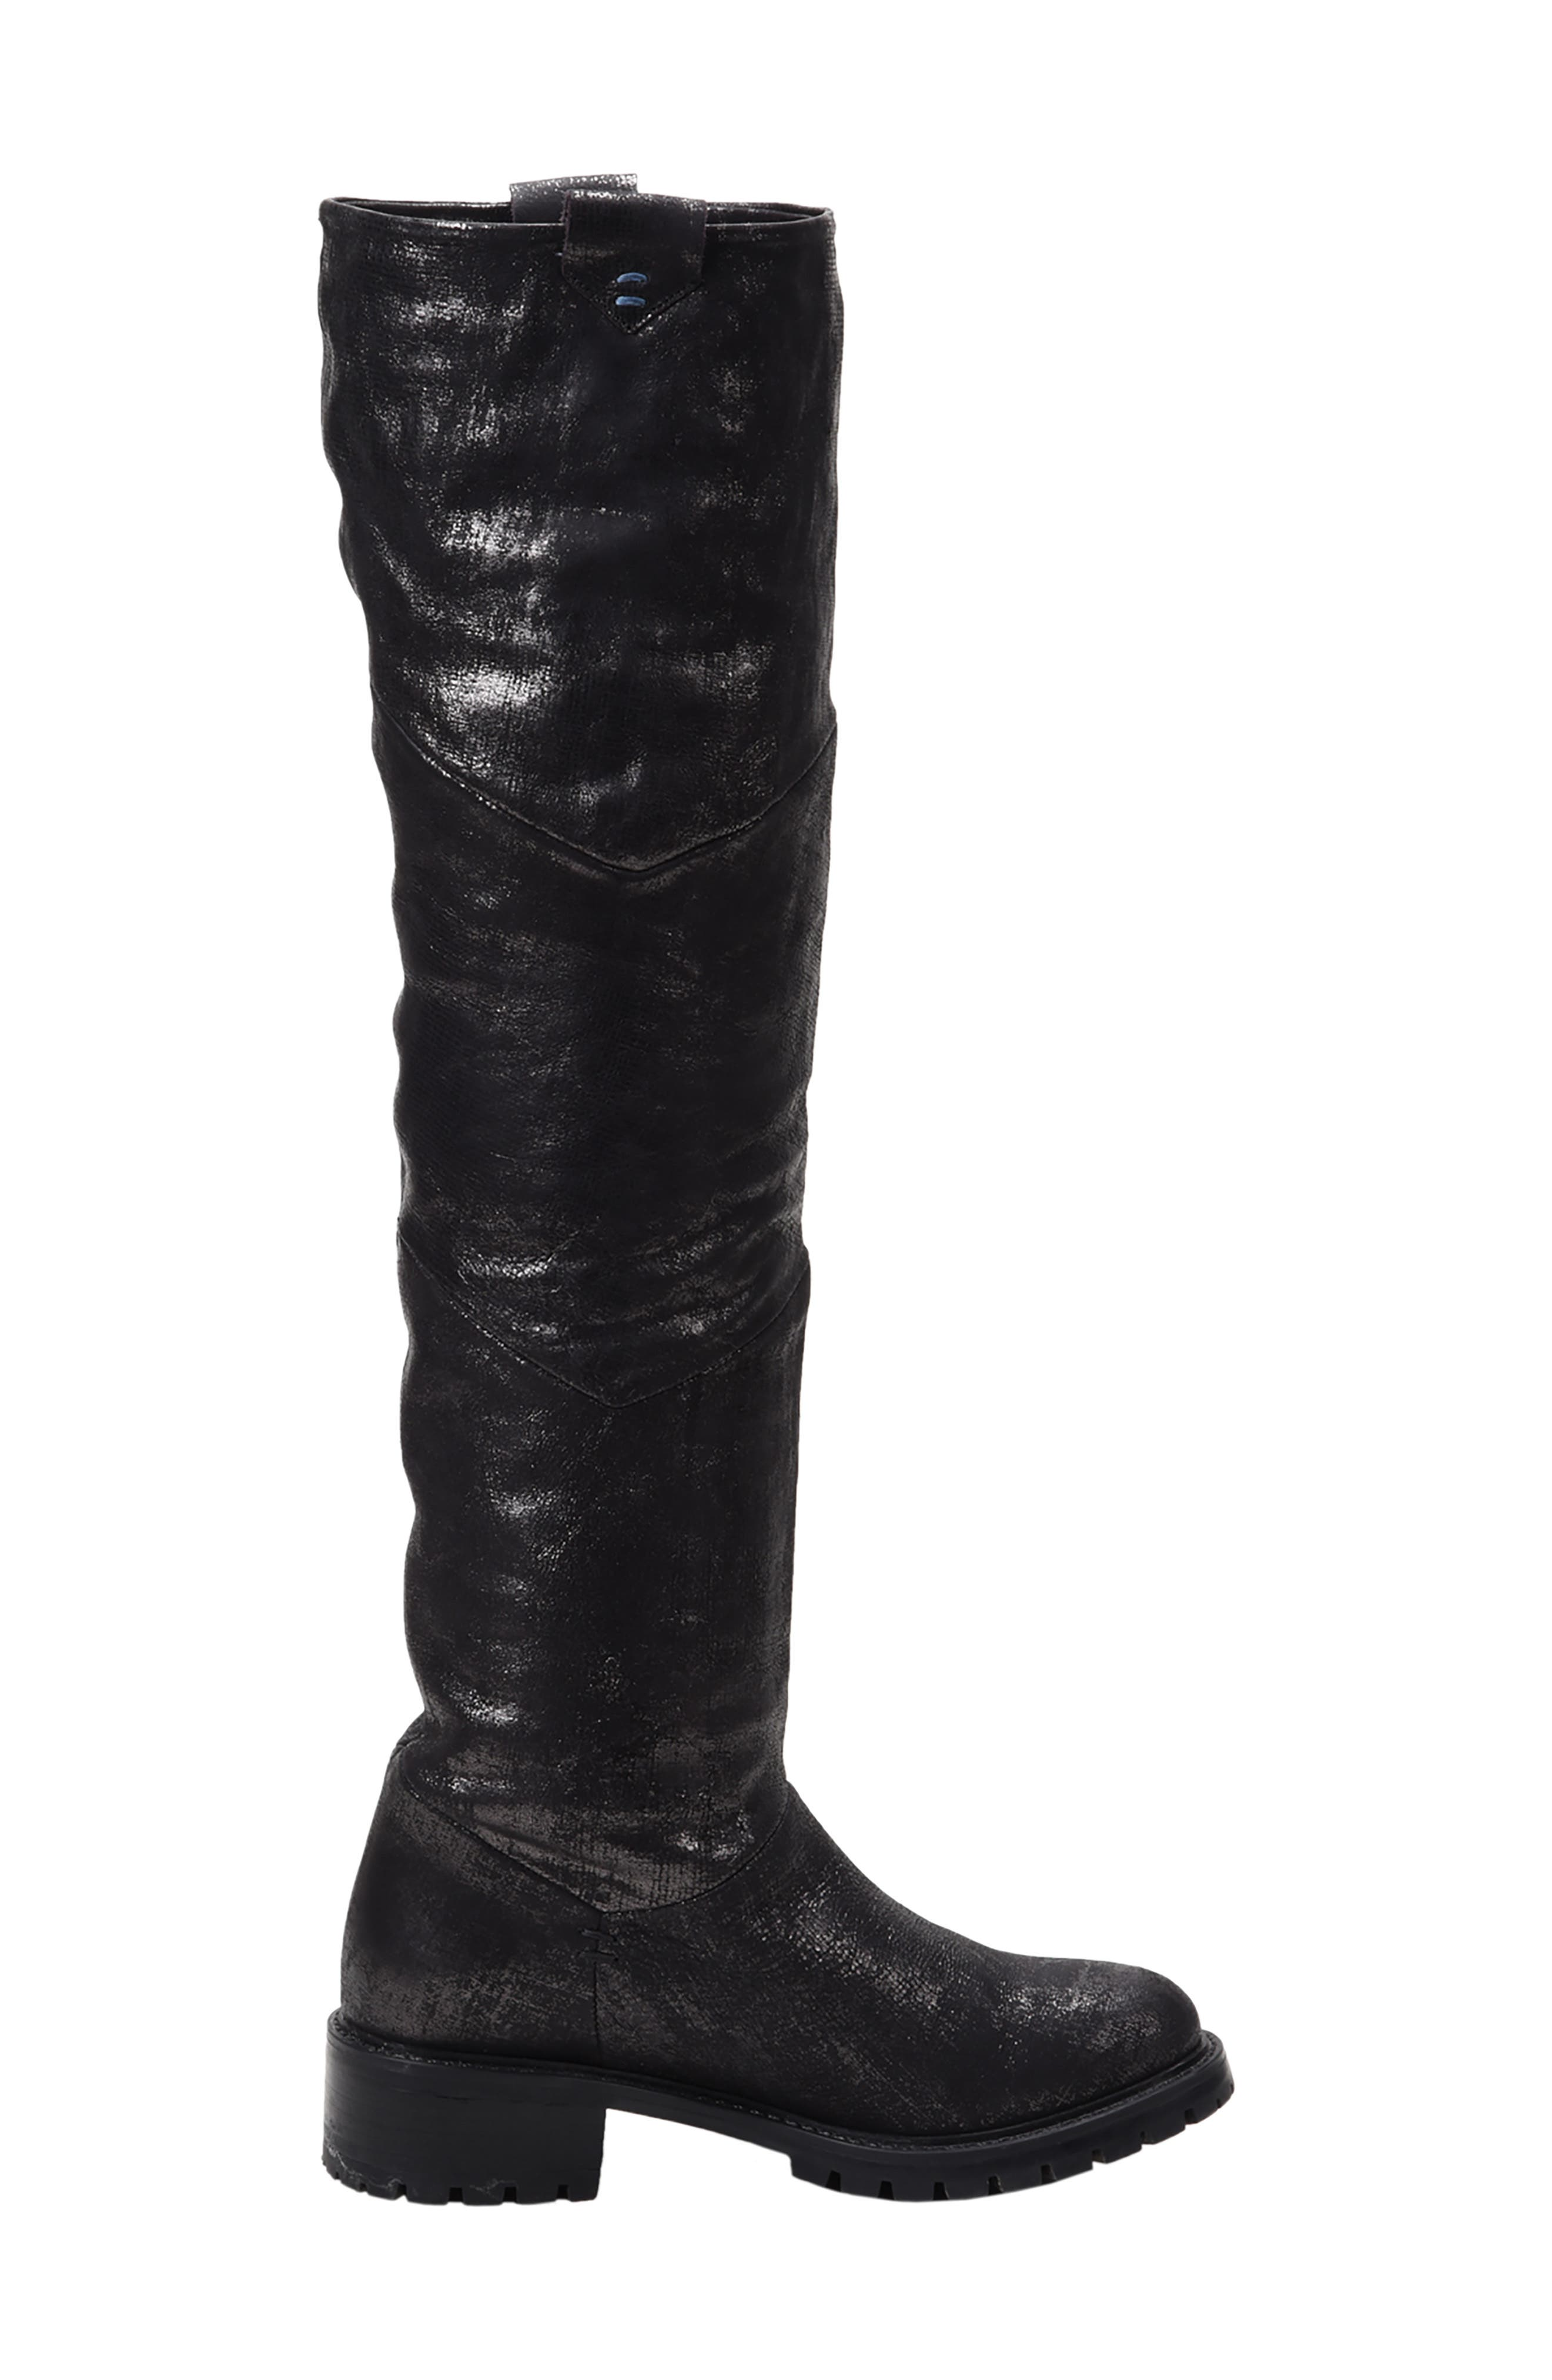 Elena Waterproof Genuine Shearling Lined Knee High Boot,                             Alternate thumbnail 7, color,                             BLACK/ SILVER LEATHER